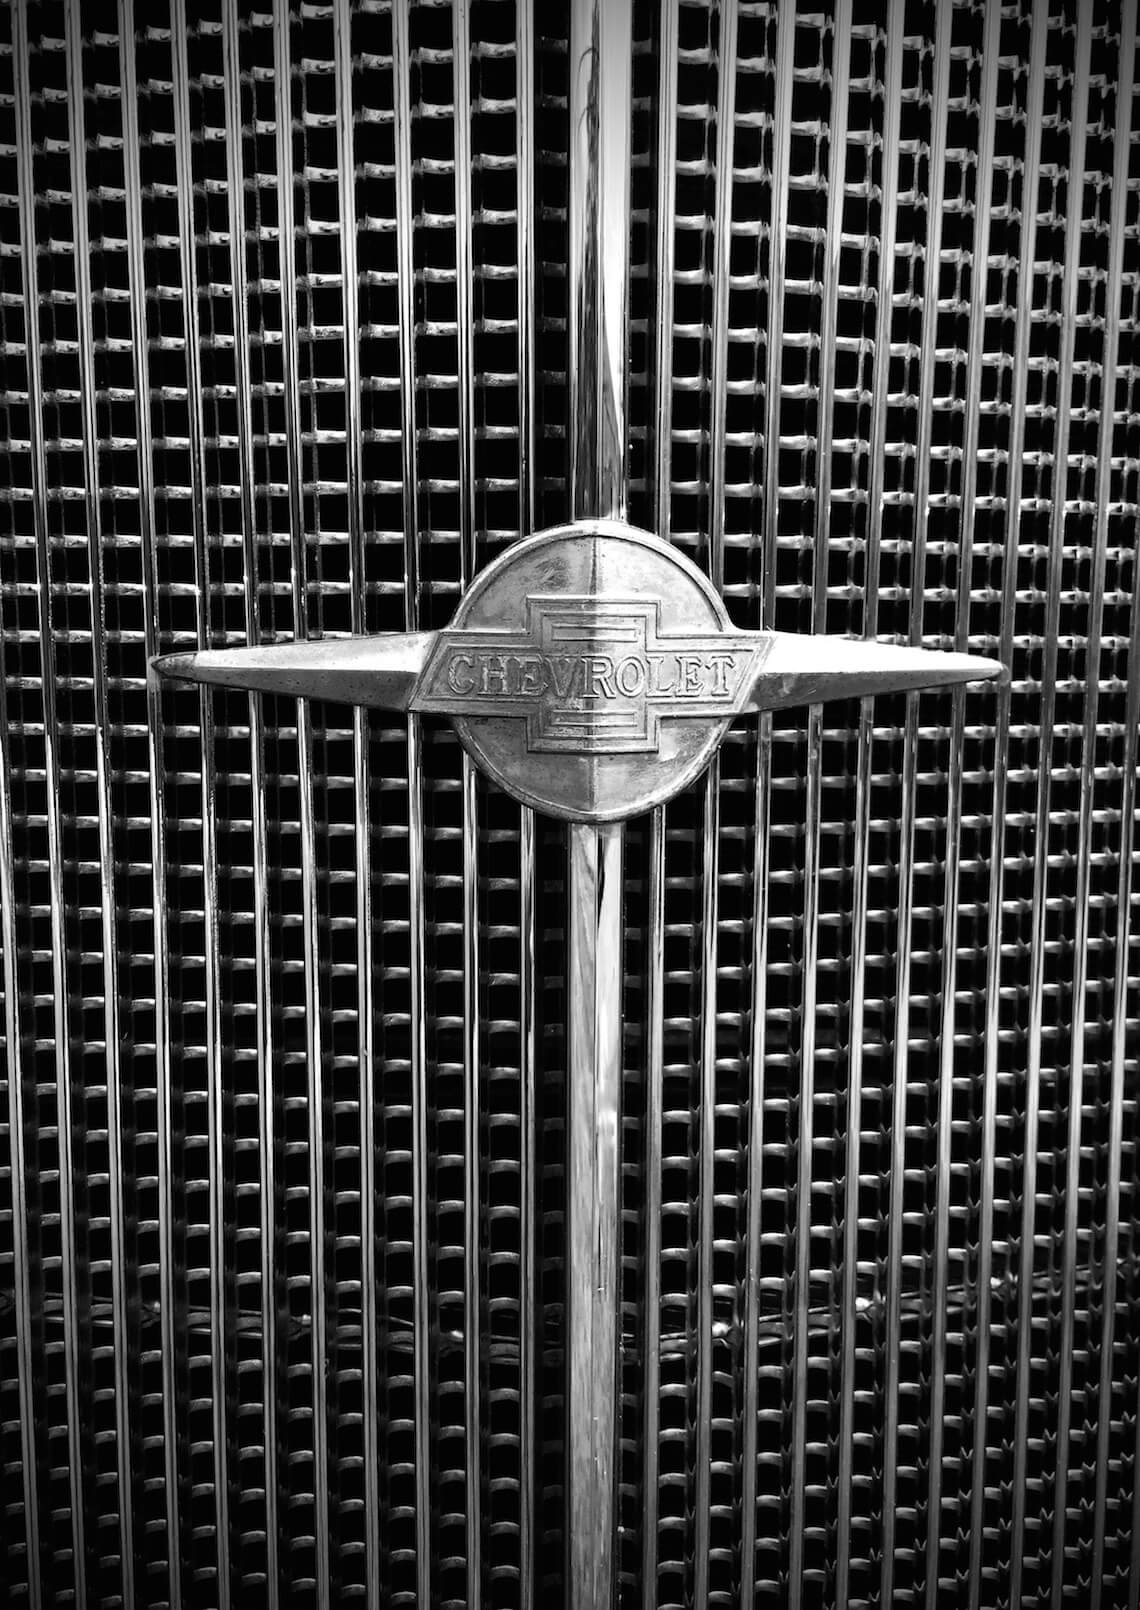 1936-chevrolet-grill